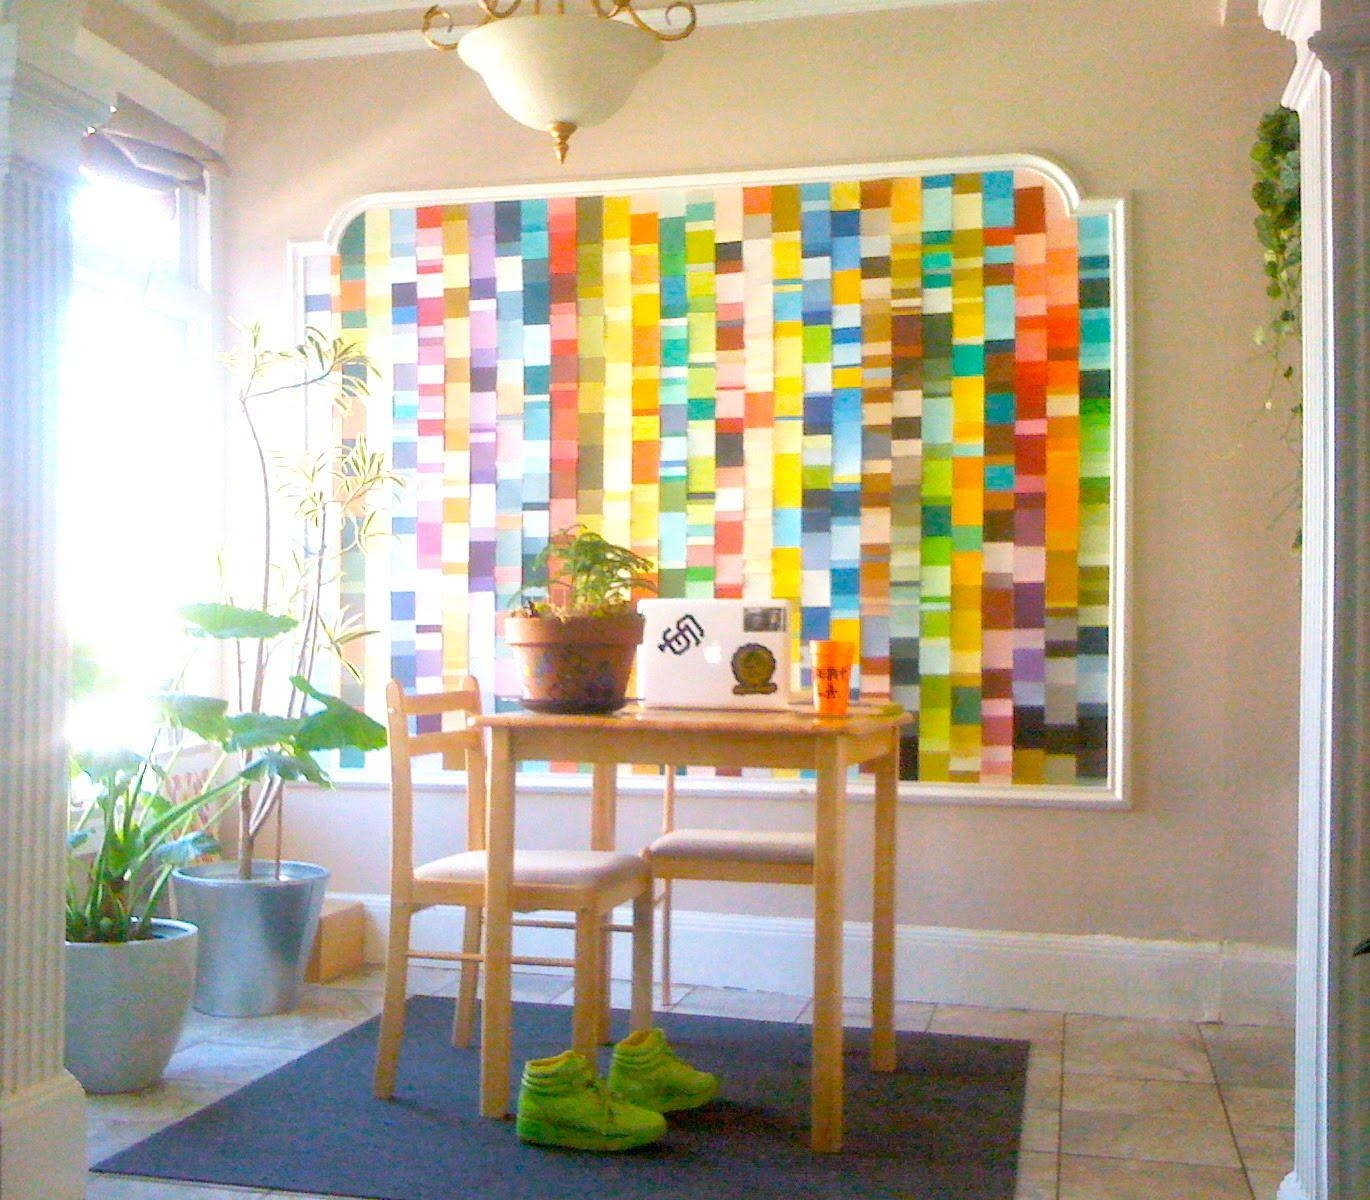 32 Paint Chip Projects - C.r.a.f.t. within Paint Swatch Wall Art